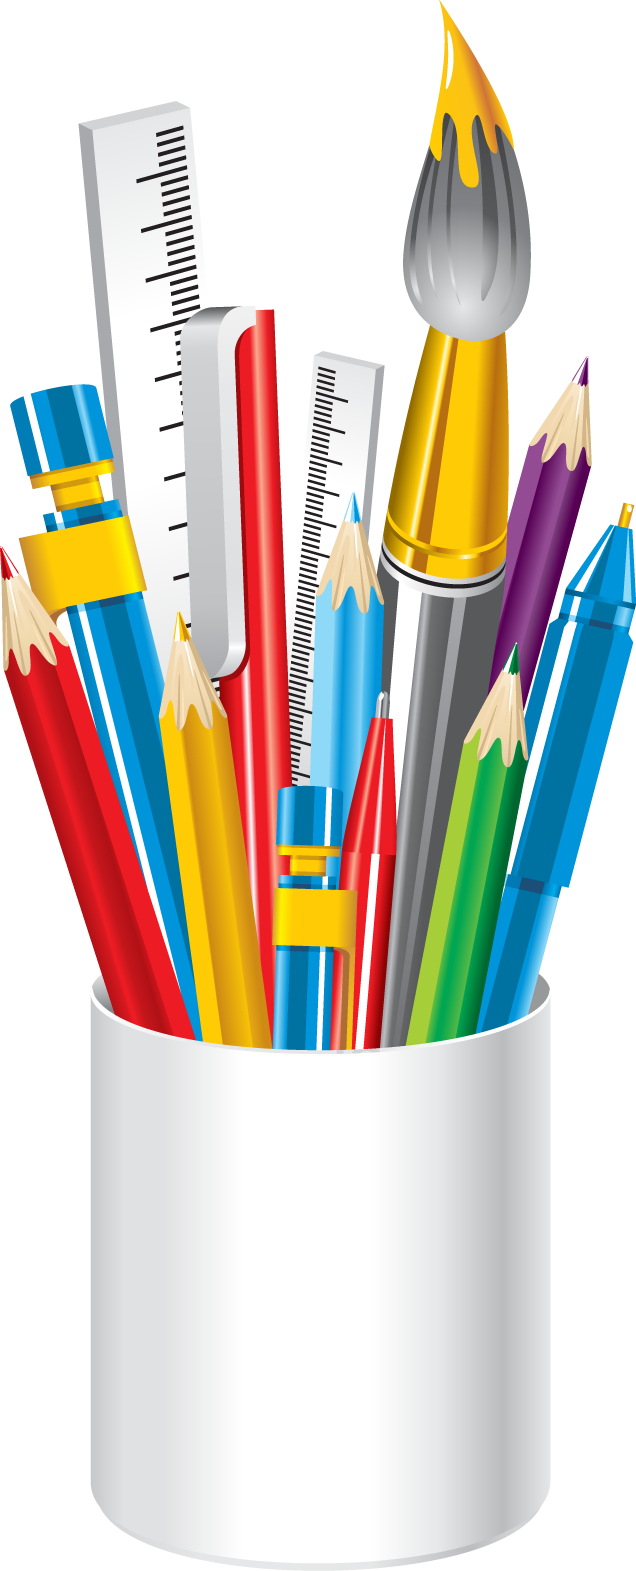 School materials clipart png free download Crayon Clipart at GetDrawings.com | Free for personal use Crayon ... png free download